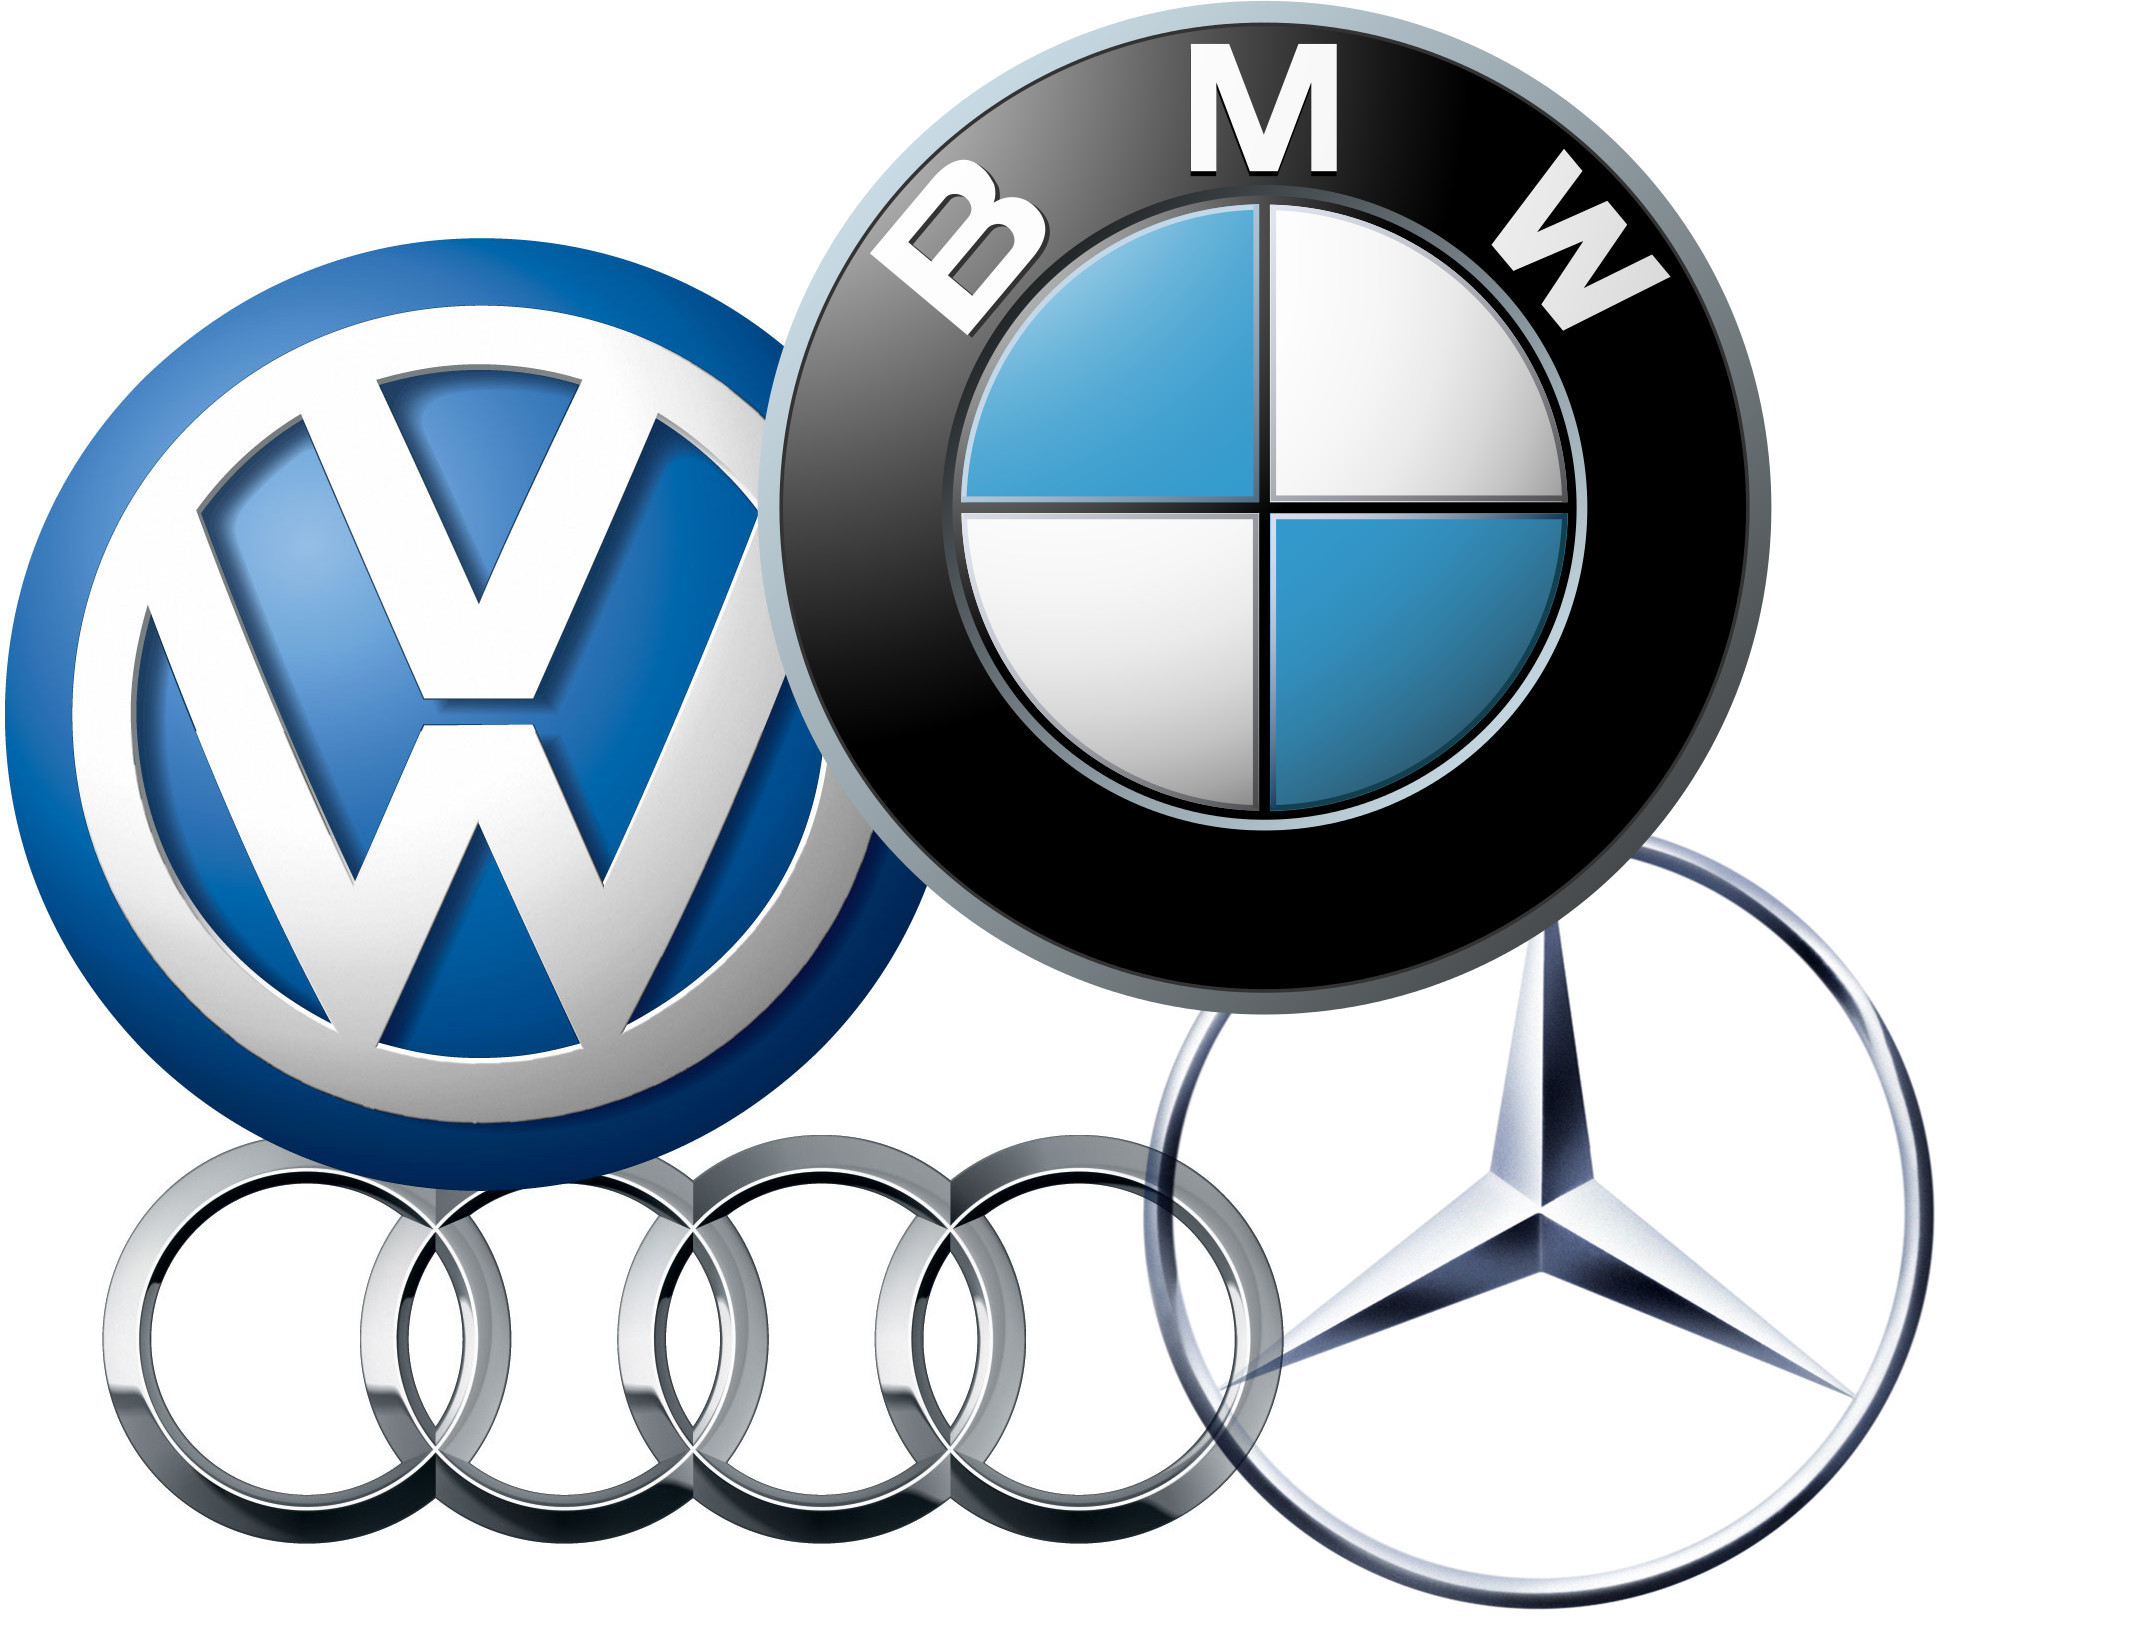 Foreign automakers growing rapidly in korea businesskorea the sales of foreign automakers in korea skyrocketed last year to exceed the annual domestic sales of kia motors not to mention gm korea and renault biocorpaavc Image collections